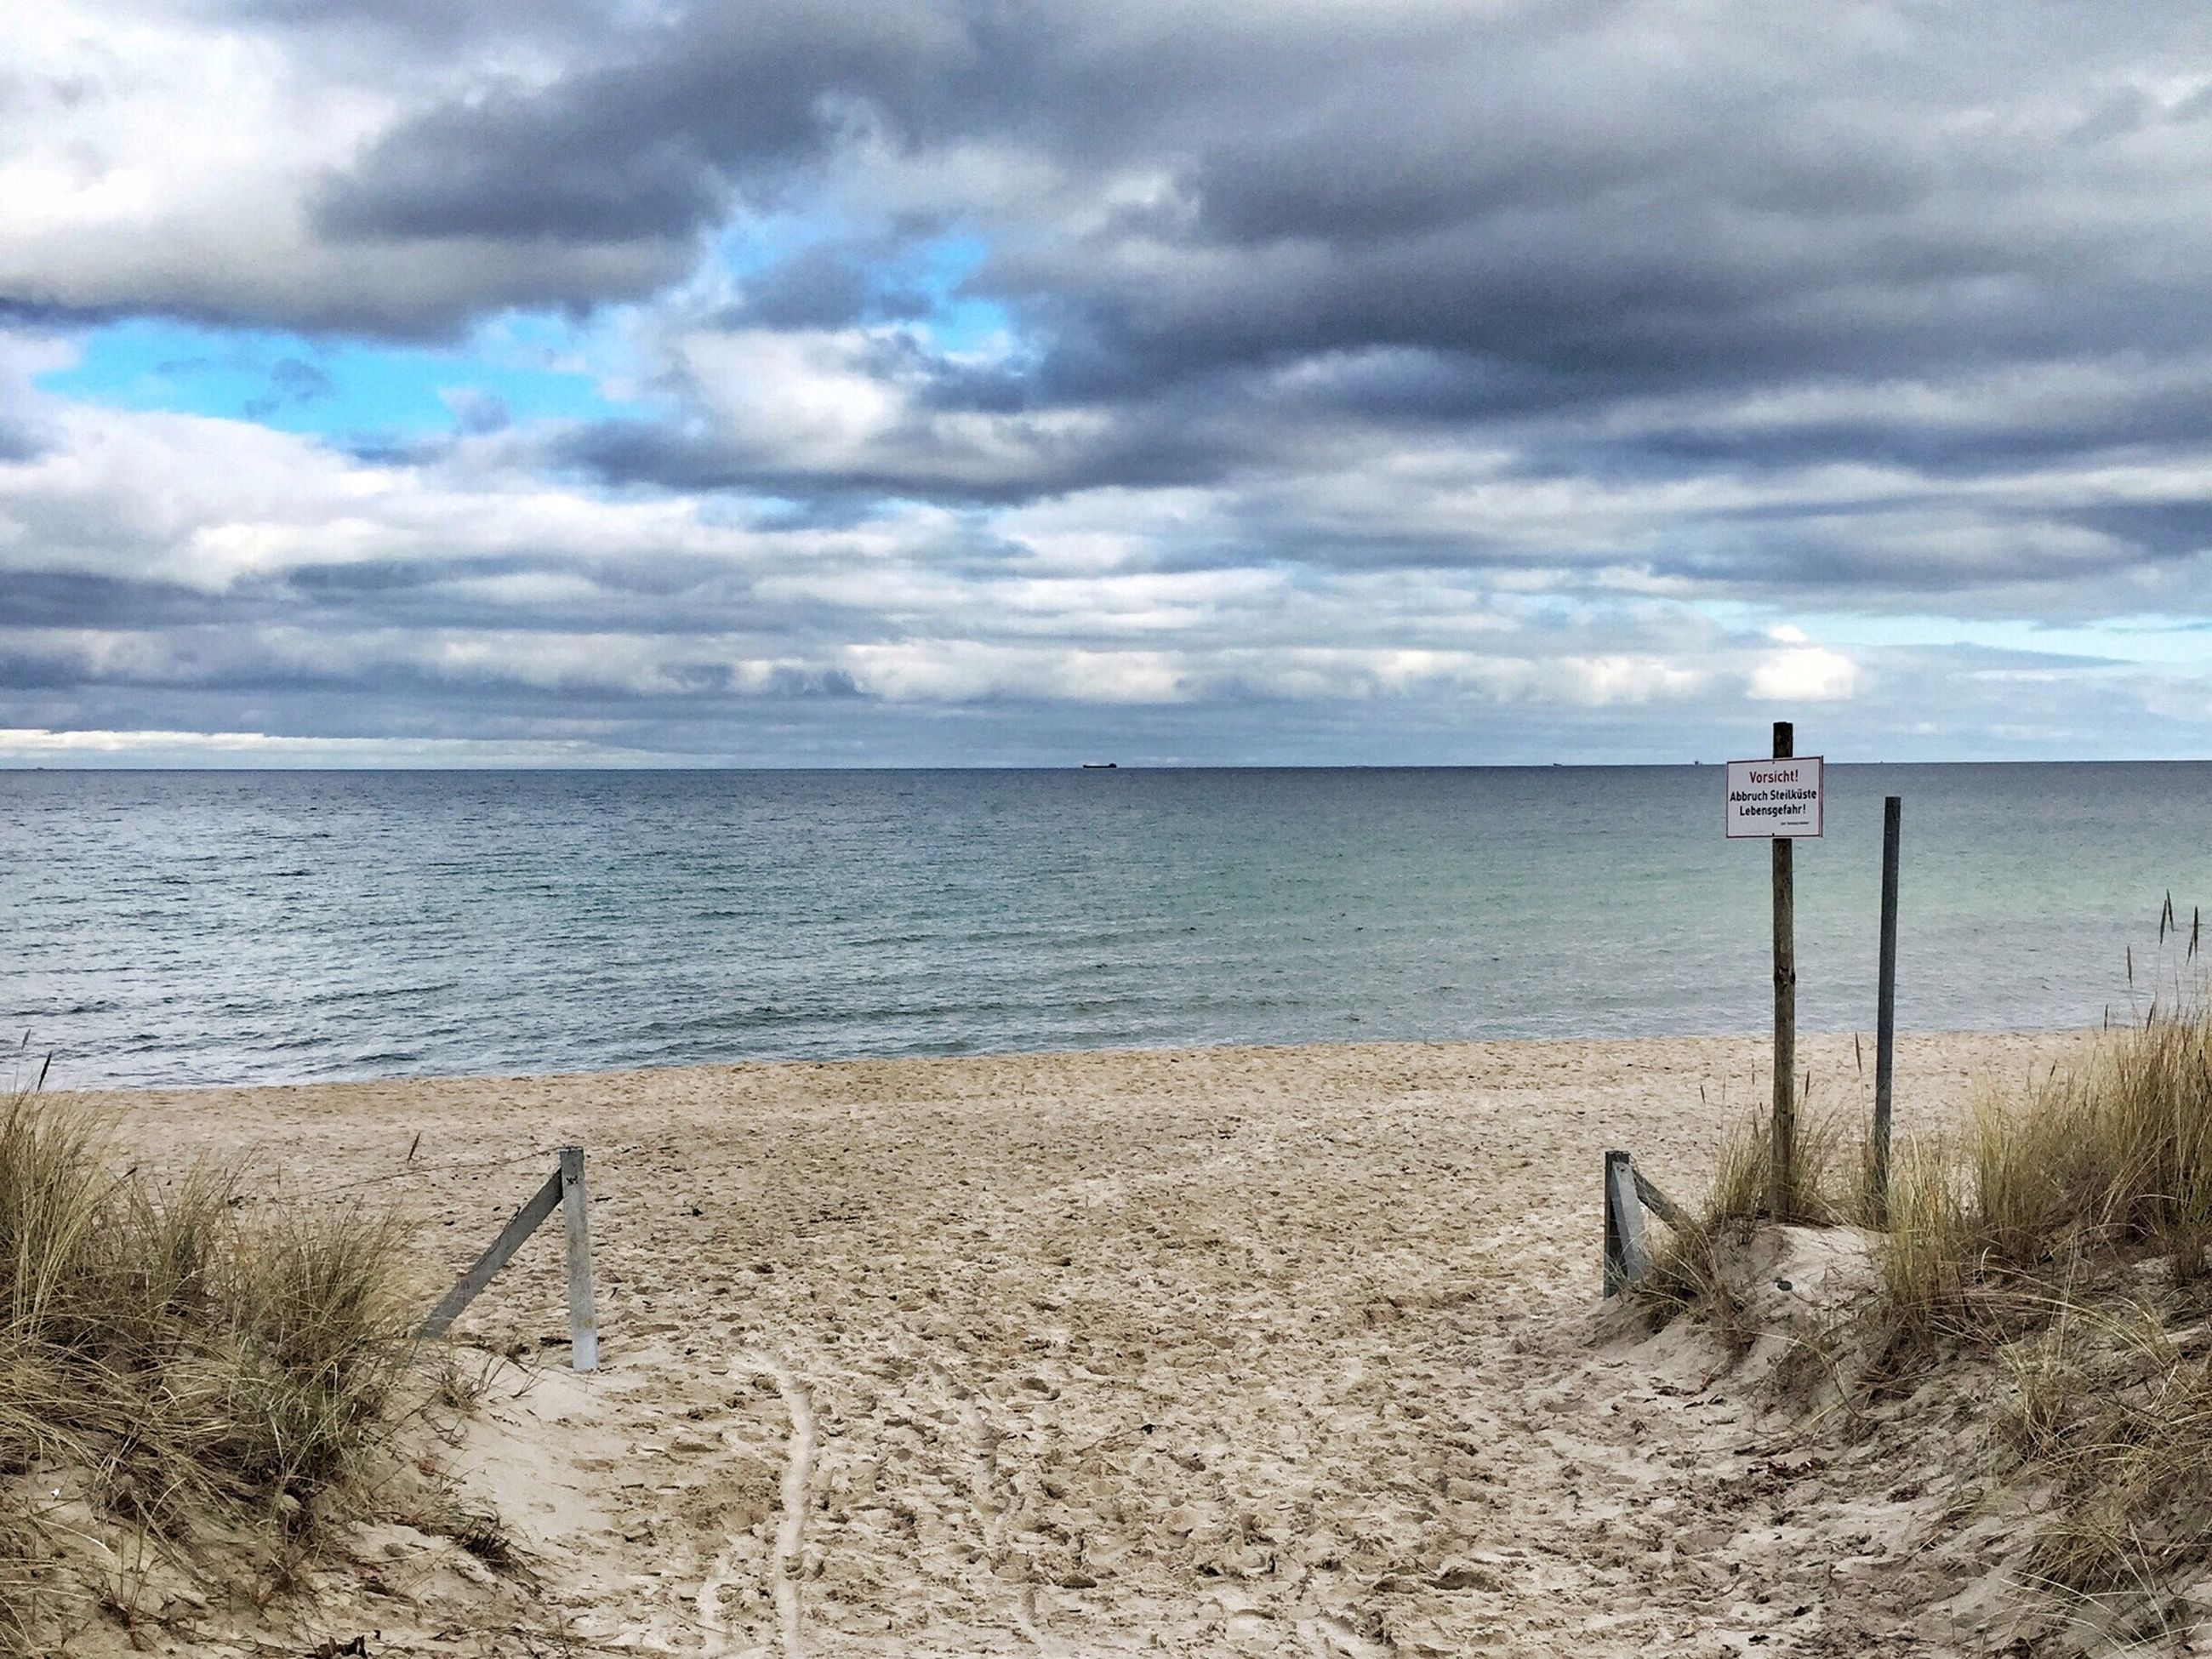 sea, horizon over water, sky, beach, water, cloud - sky, tranquility, tranquil scene, shore, scenics, cloudy, beauty in nature, nature, sand, cloud, idyllic, calm, remote, day, outdoors